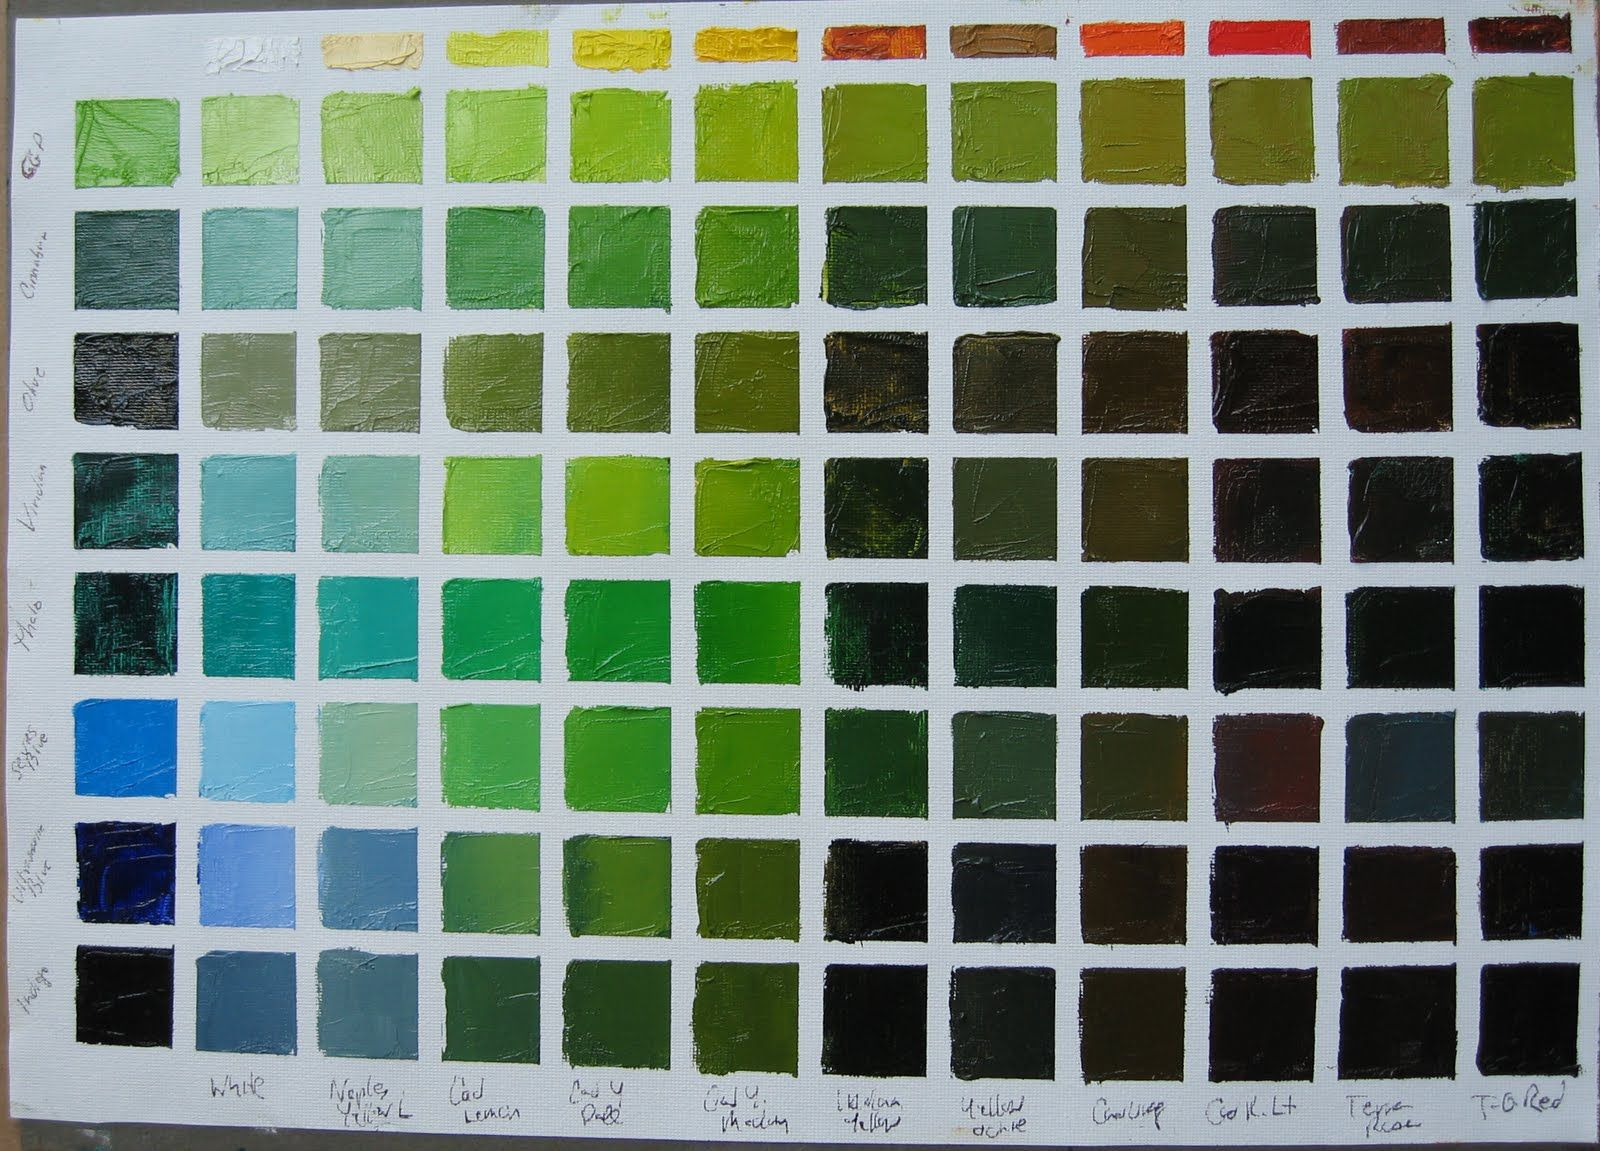 Folk art acrylic paint color chart - Pat Fiorello Art Elevates Life Oil Painting Color Charts How To Mix Green